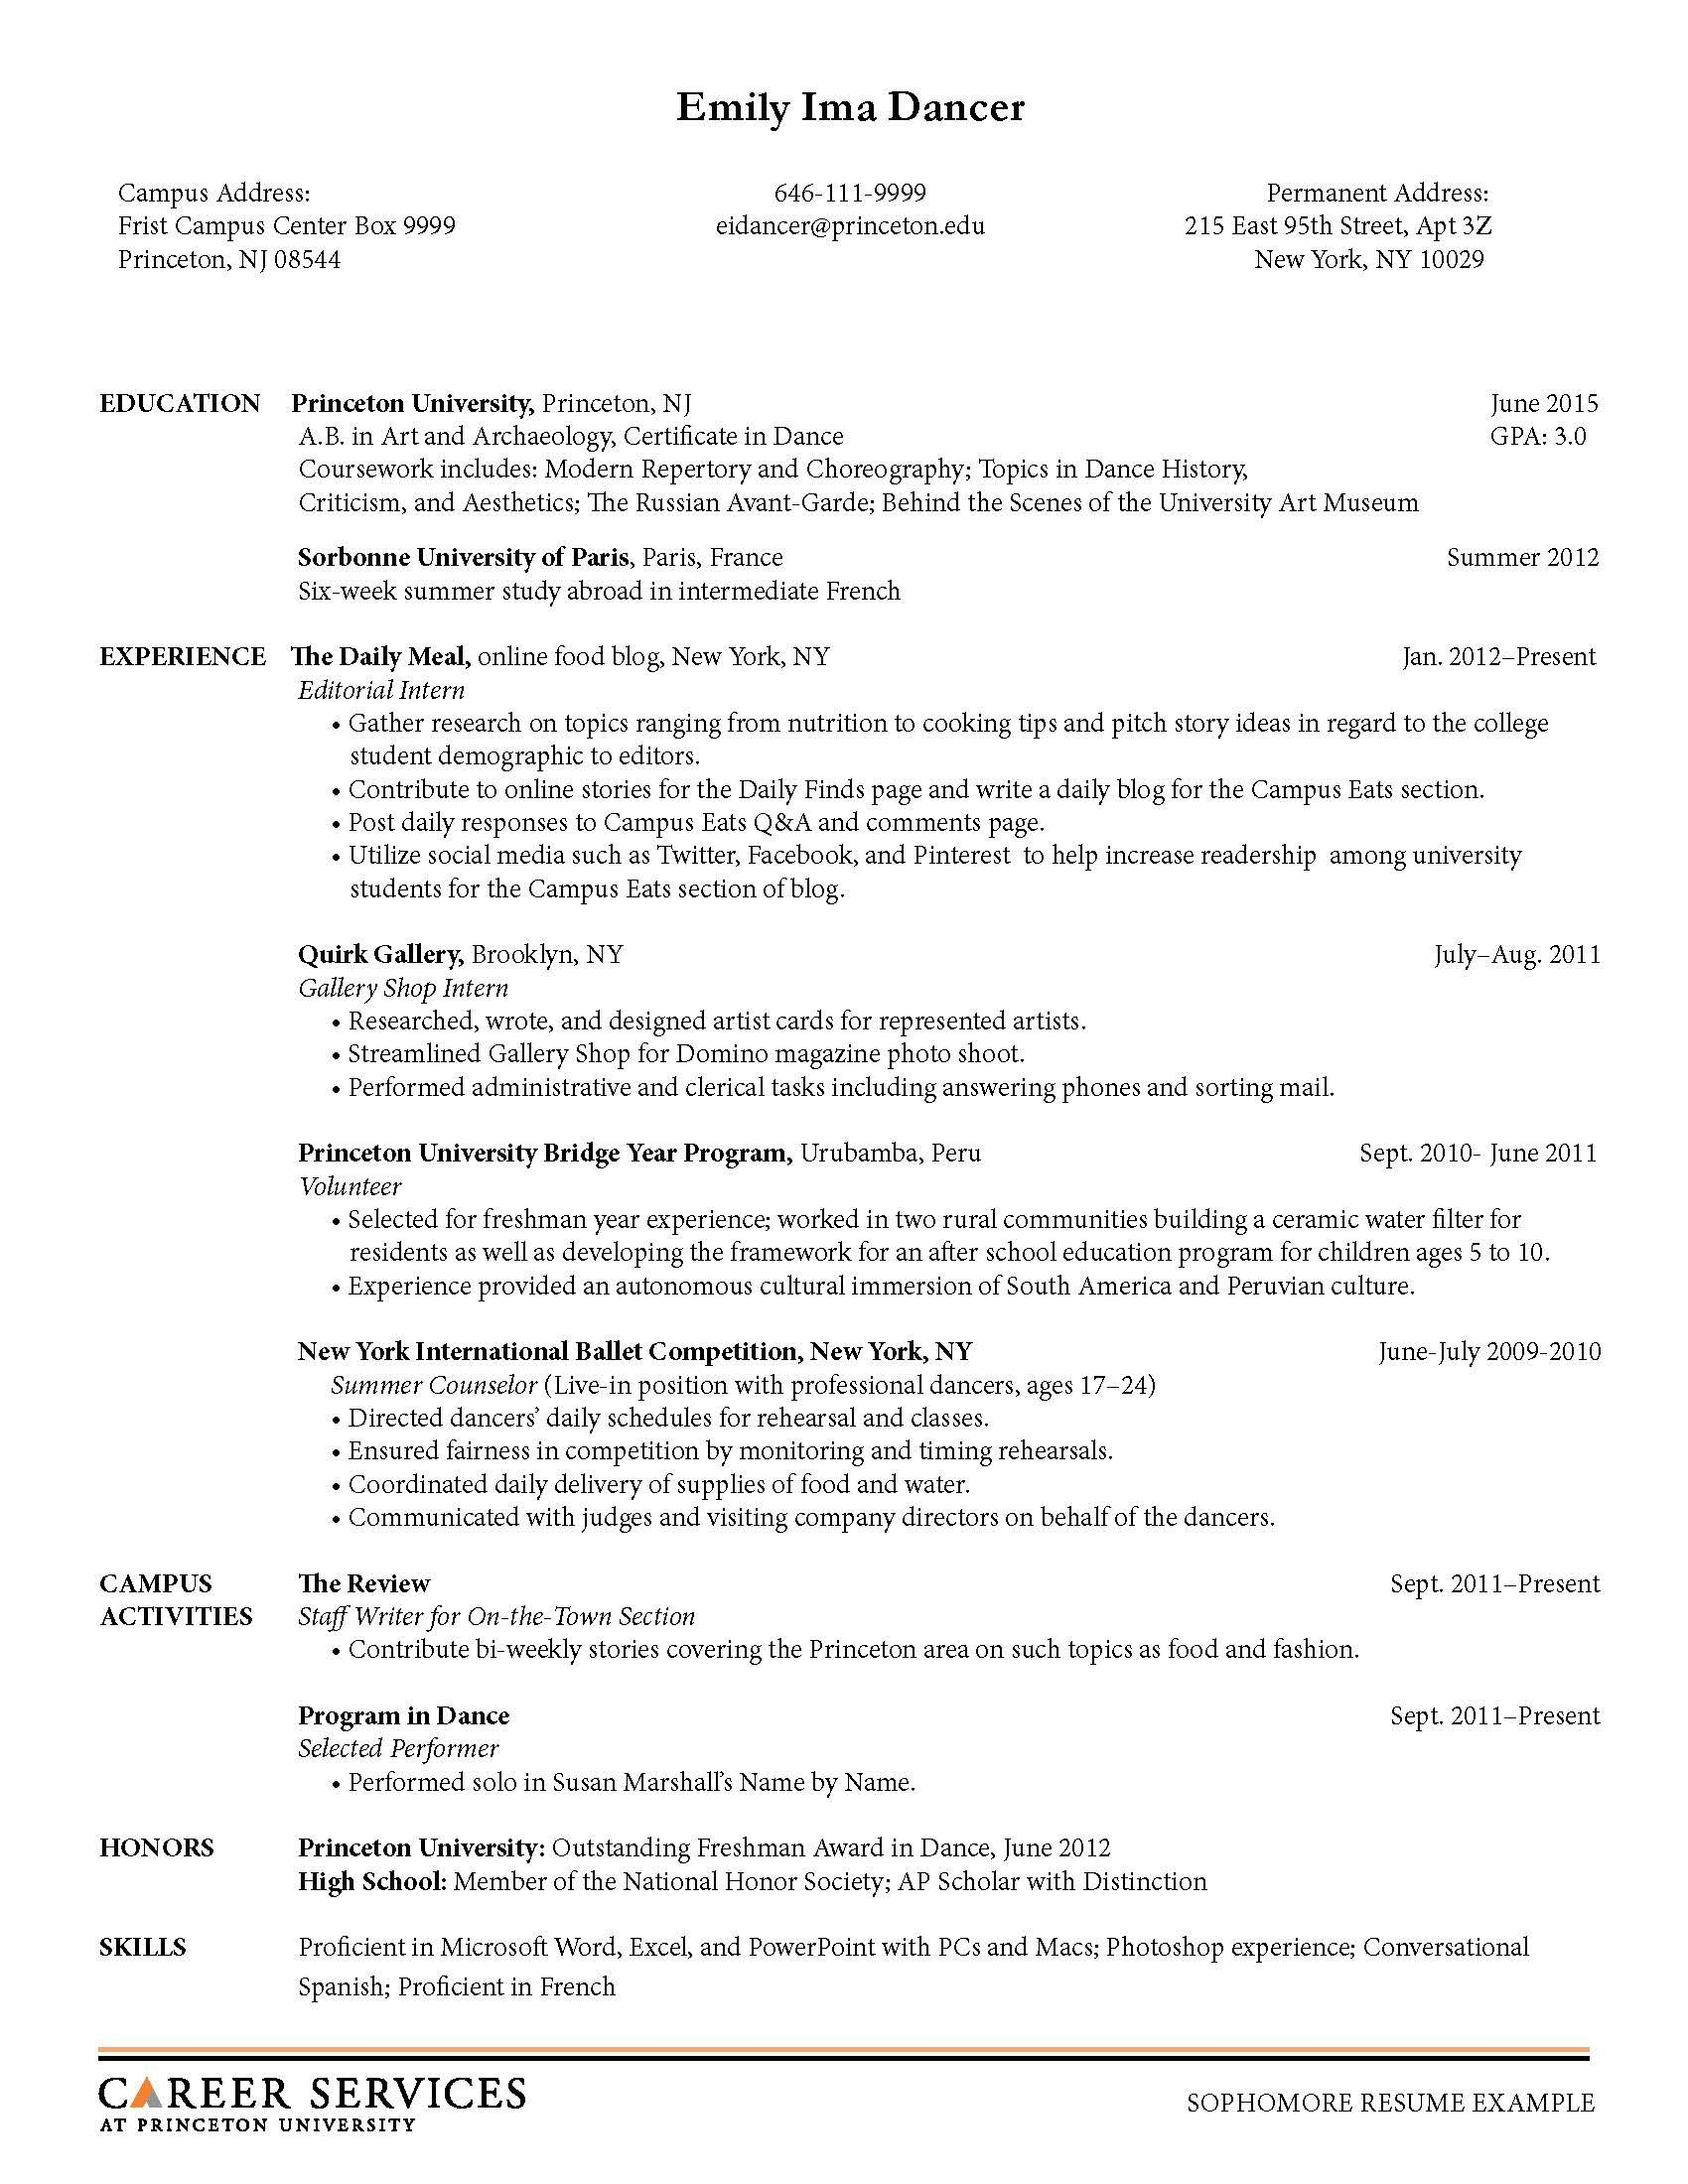 Picnictoimpeachus  Nice Sample Resume Resume And Career On Pinterest With Foxy Resume Experts Besides Contemporary Resume Templates Furthermore Program Analyst Resume With Delightful Coo Resume Also Top Resume Examples In Addition Registered Nurse Resume Template And High School Resume Format As Well As Resume Vocabulary Additionally Summaries For Resumes From Pinterestcom With Picnictoimpeachus  Foxy Sample Resume Resume And Career On Pinterest With Delightful Resume Experts Besides Contemporary Resume Templates Furthermore Program Analyst Resume And Nice Coo Resume Also Top Resume Examples In Addition Registered Nurse Resume Template From Pinterestcom